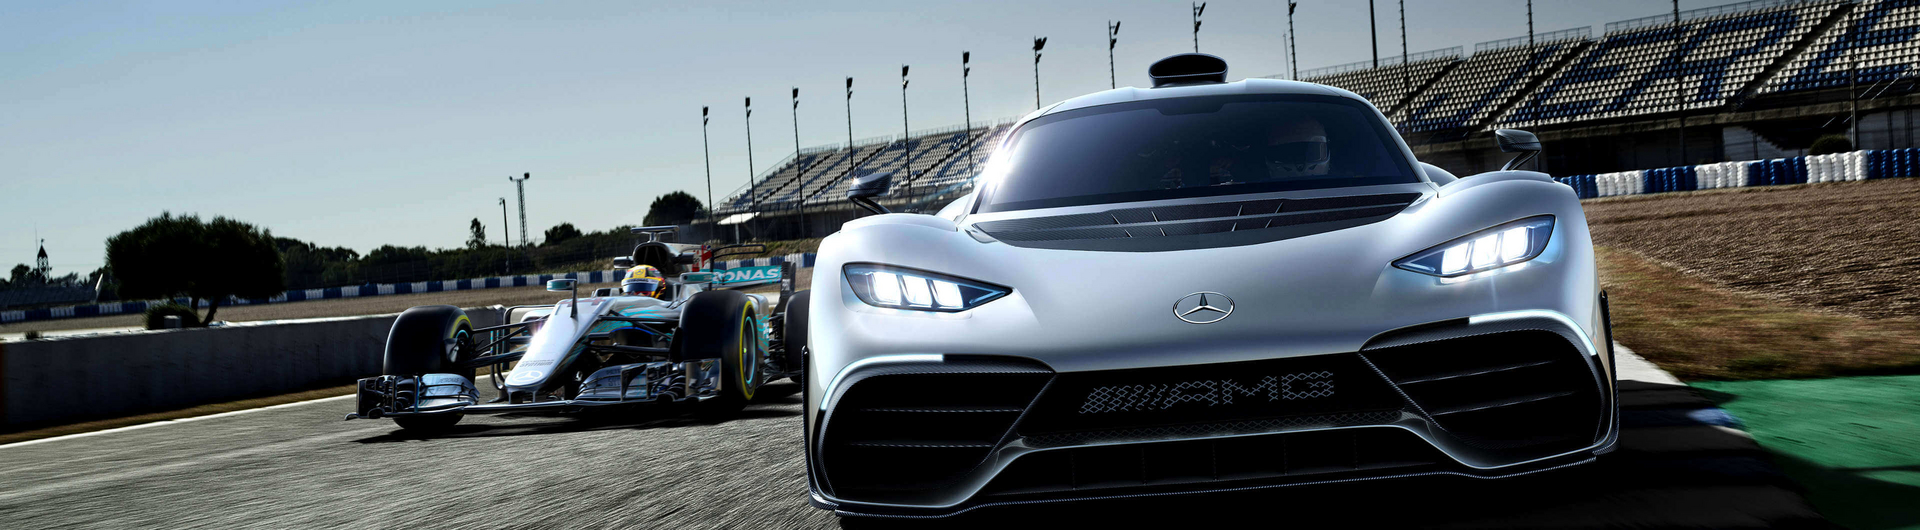 Mercedes-AMG Project ONE - Hypercar mit Formel 1 Technologie